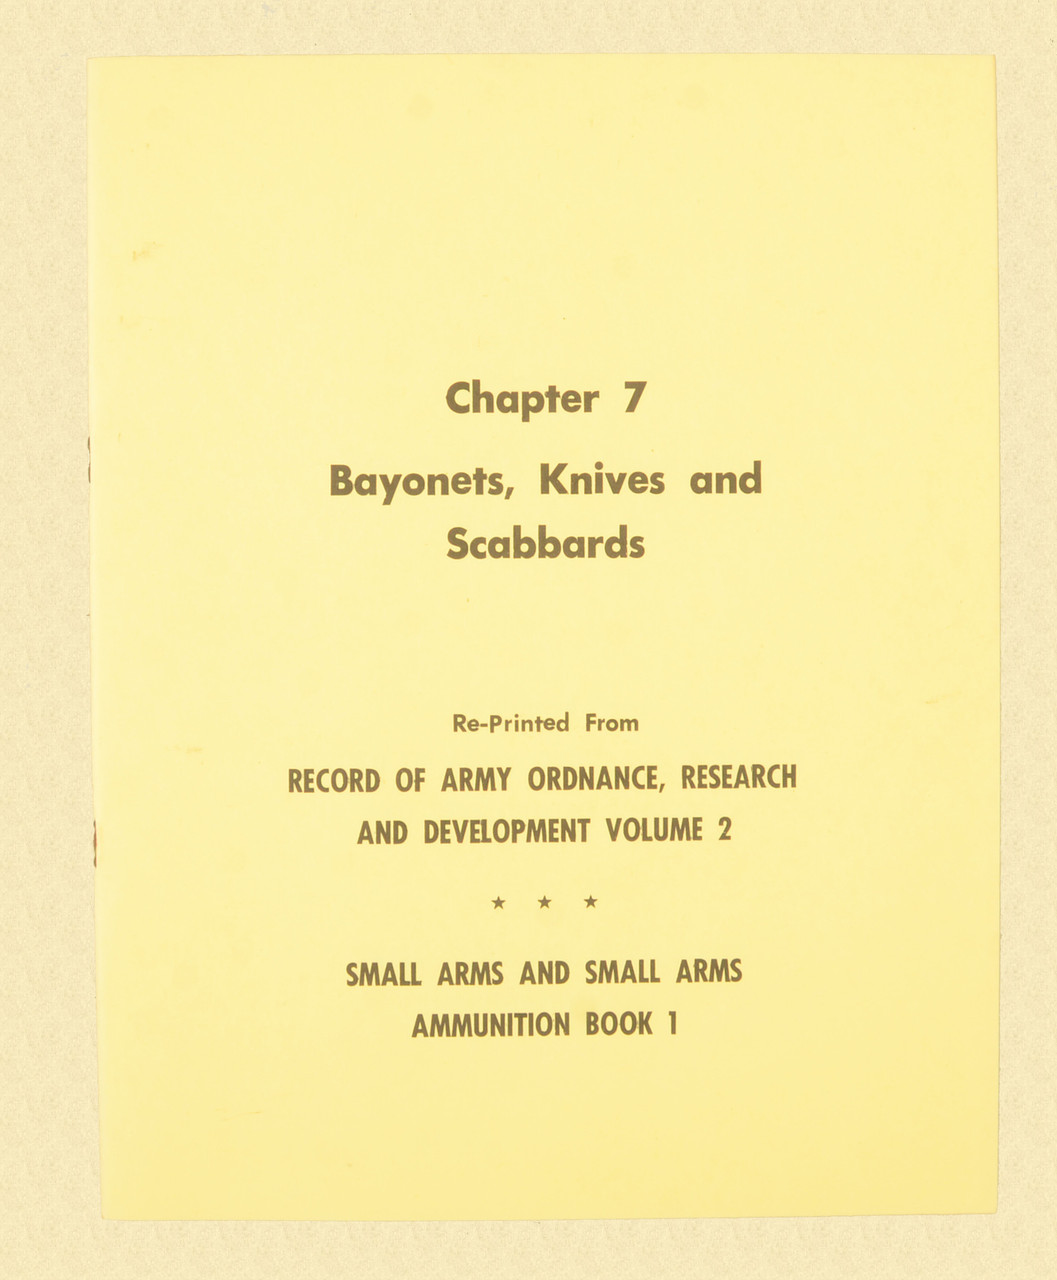 BOOKLET BAYONETS KNIVES AND SCABBARDS CHAPTER 7 - K1834